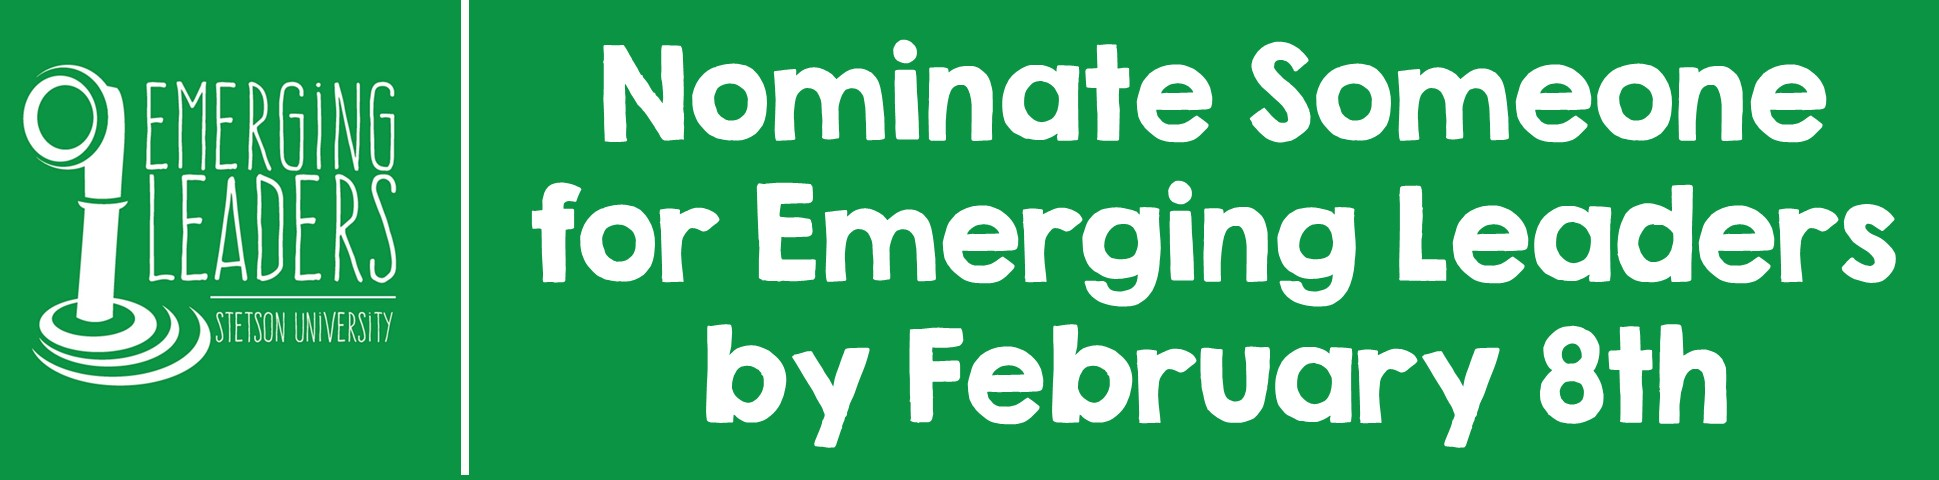 media/Program - Emerging Leaders Nominate - Spring 2016.jpg